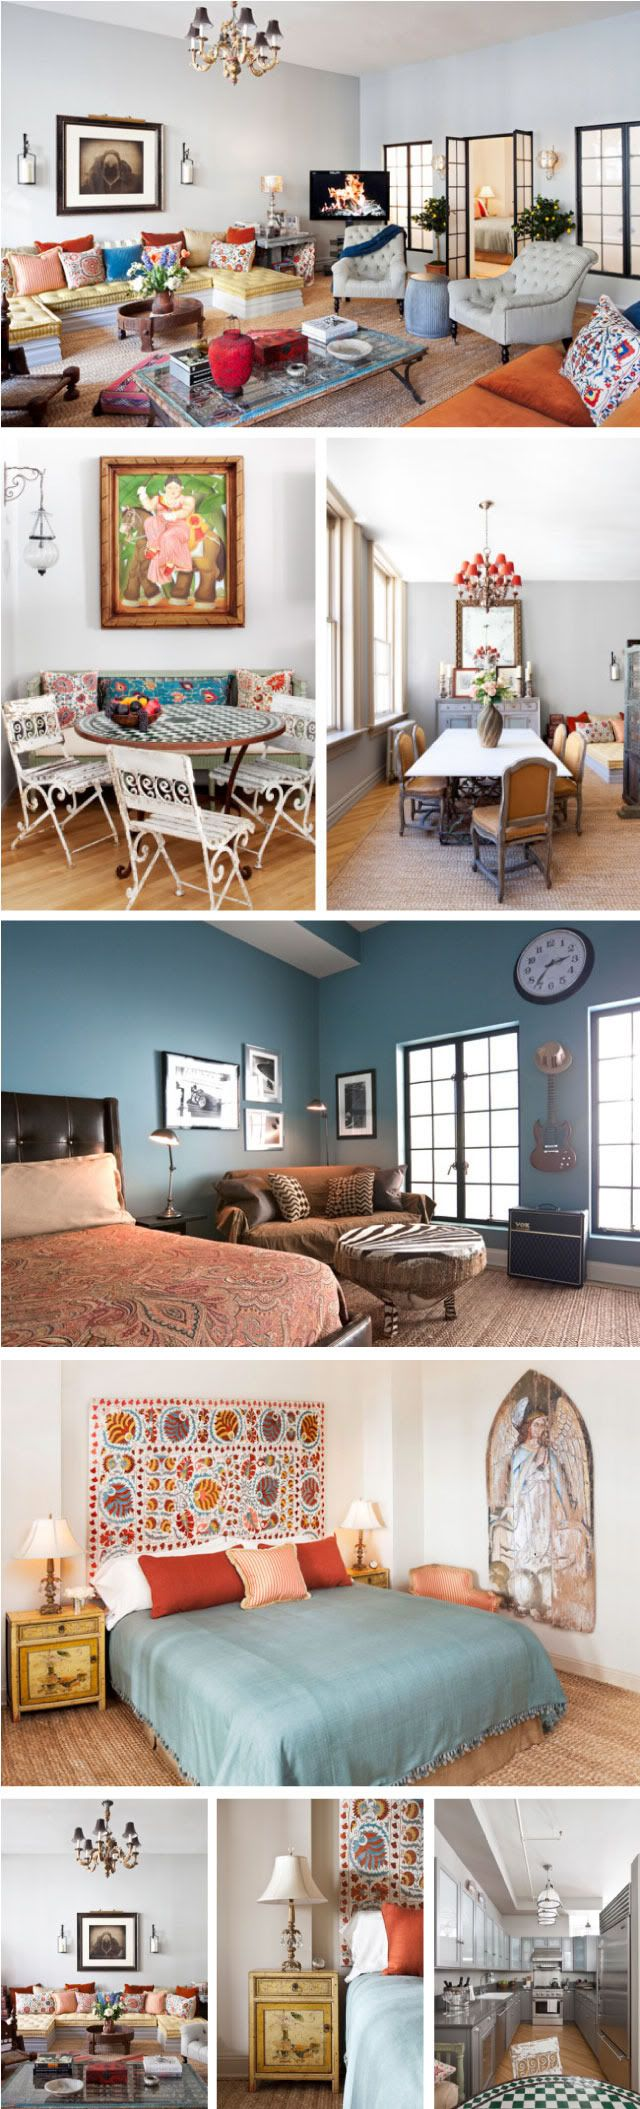 Find This Pin And More On Spanish Style Homes By Bcoll91